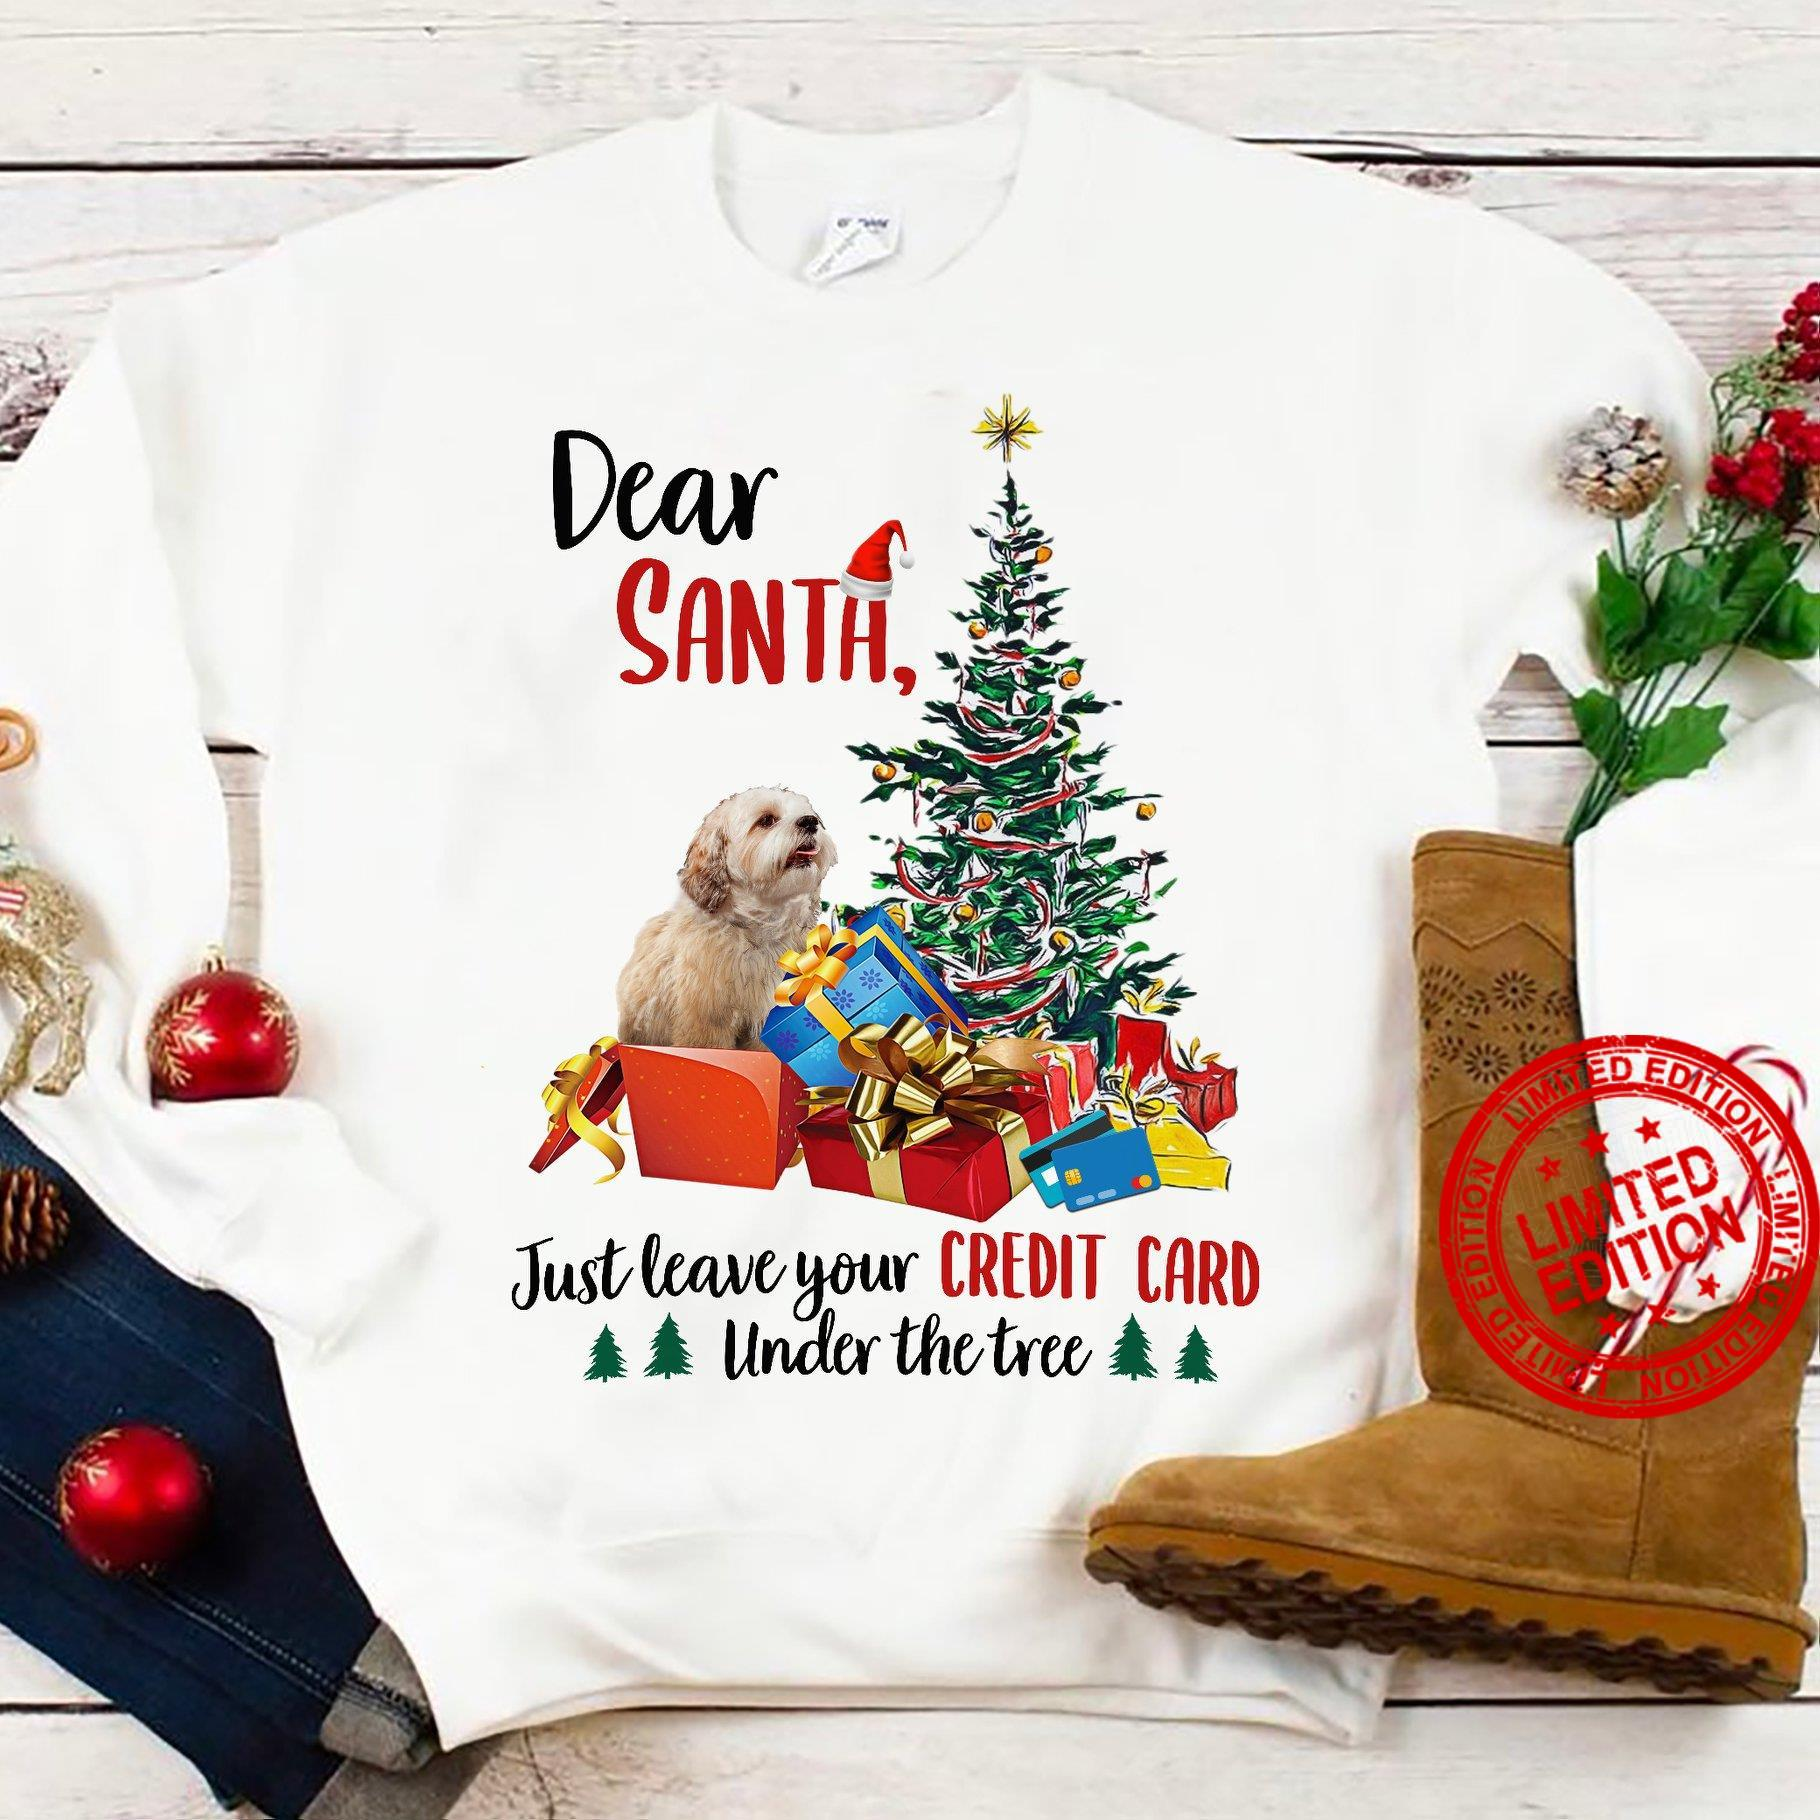 Dear Santa Just Leave Your Credit Card Under The Tree Shirt